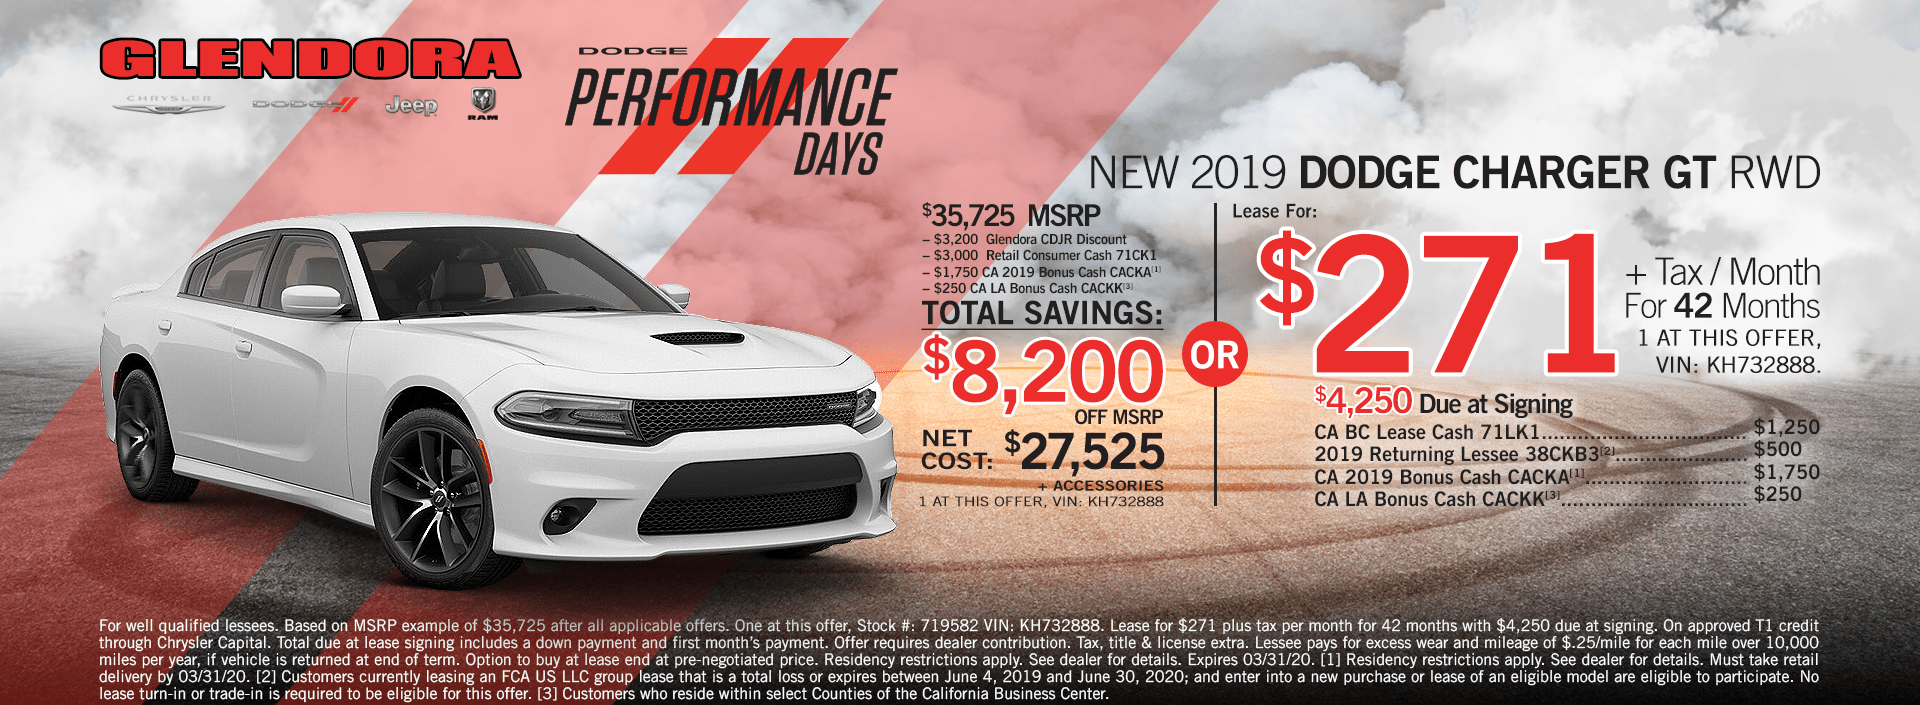 Dodge Charger Lease Special and Purchase Deal